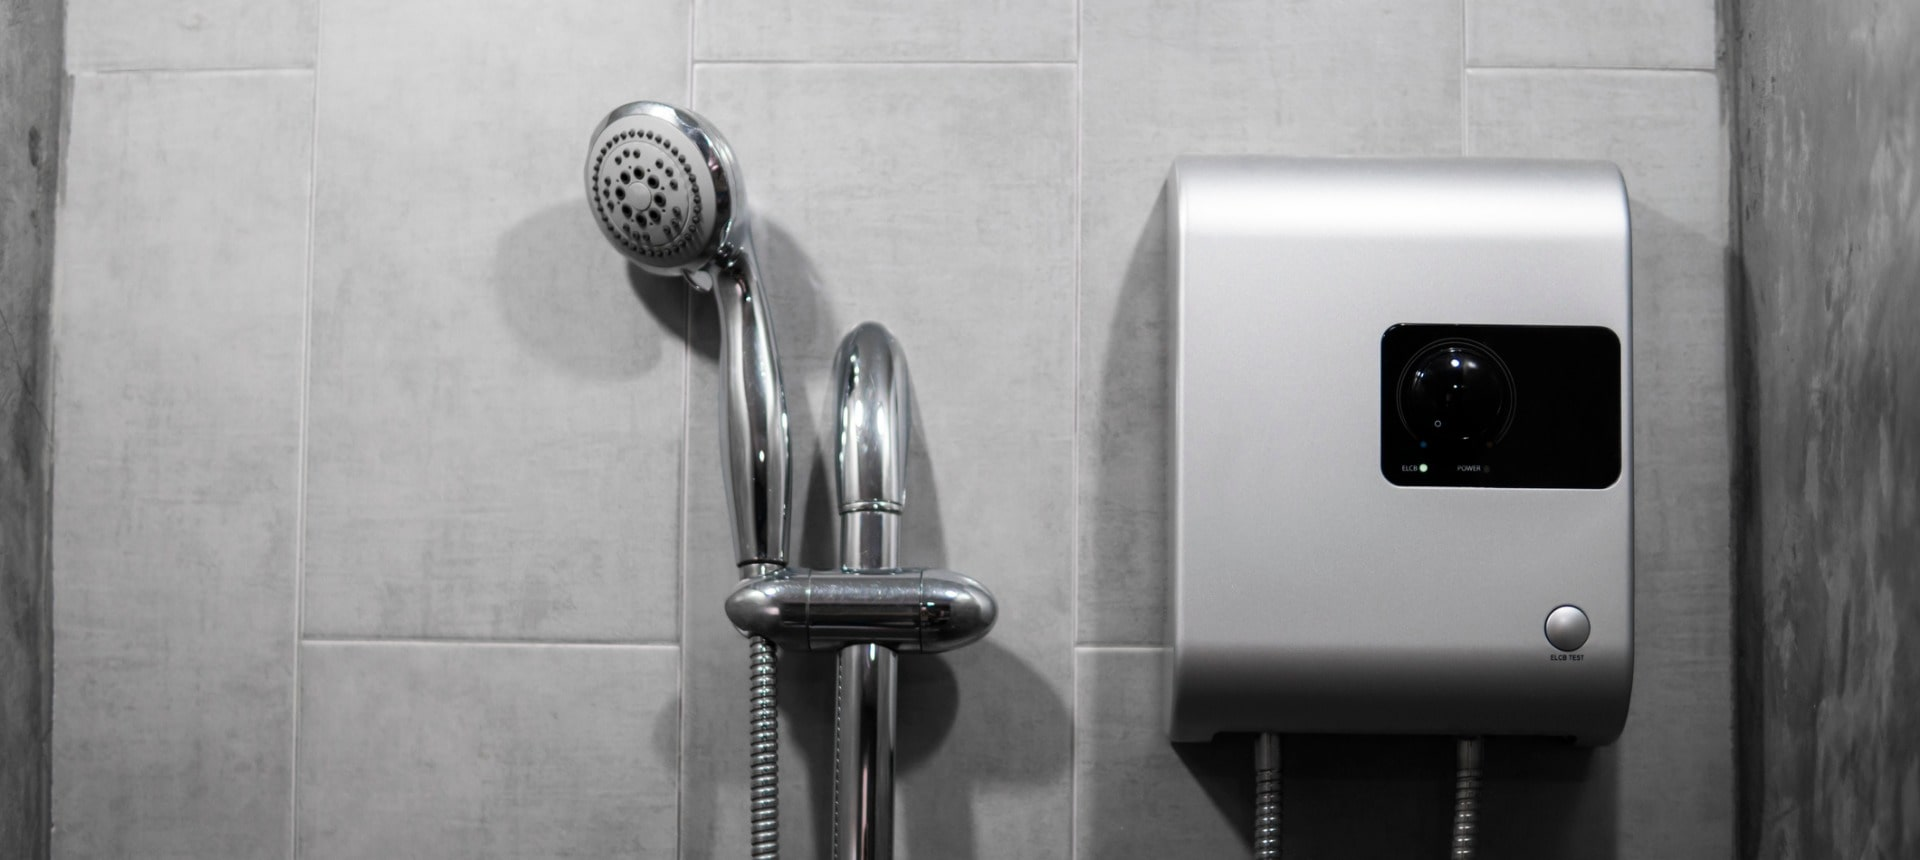 instant-tankless-electric-water-heater-installed-on-grey-tile-wall-picture-id1198616760-min